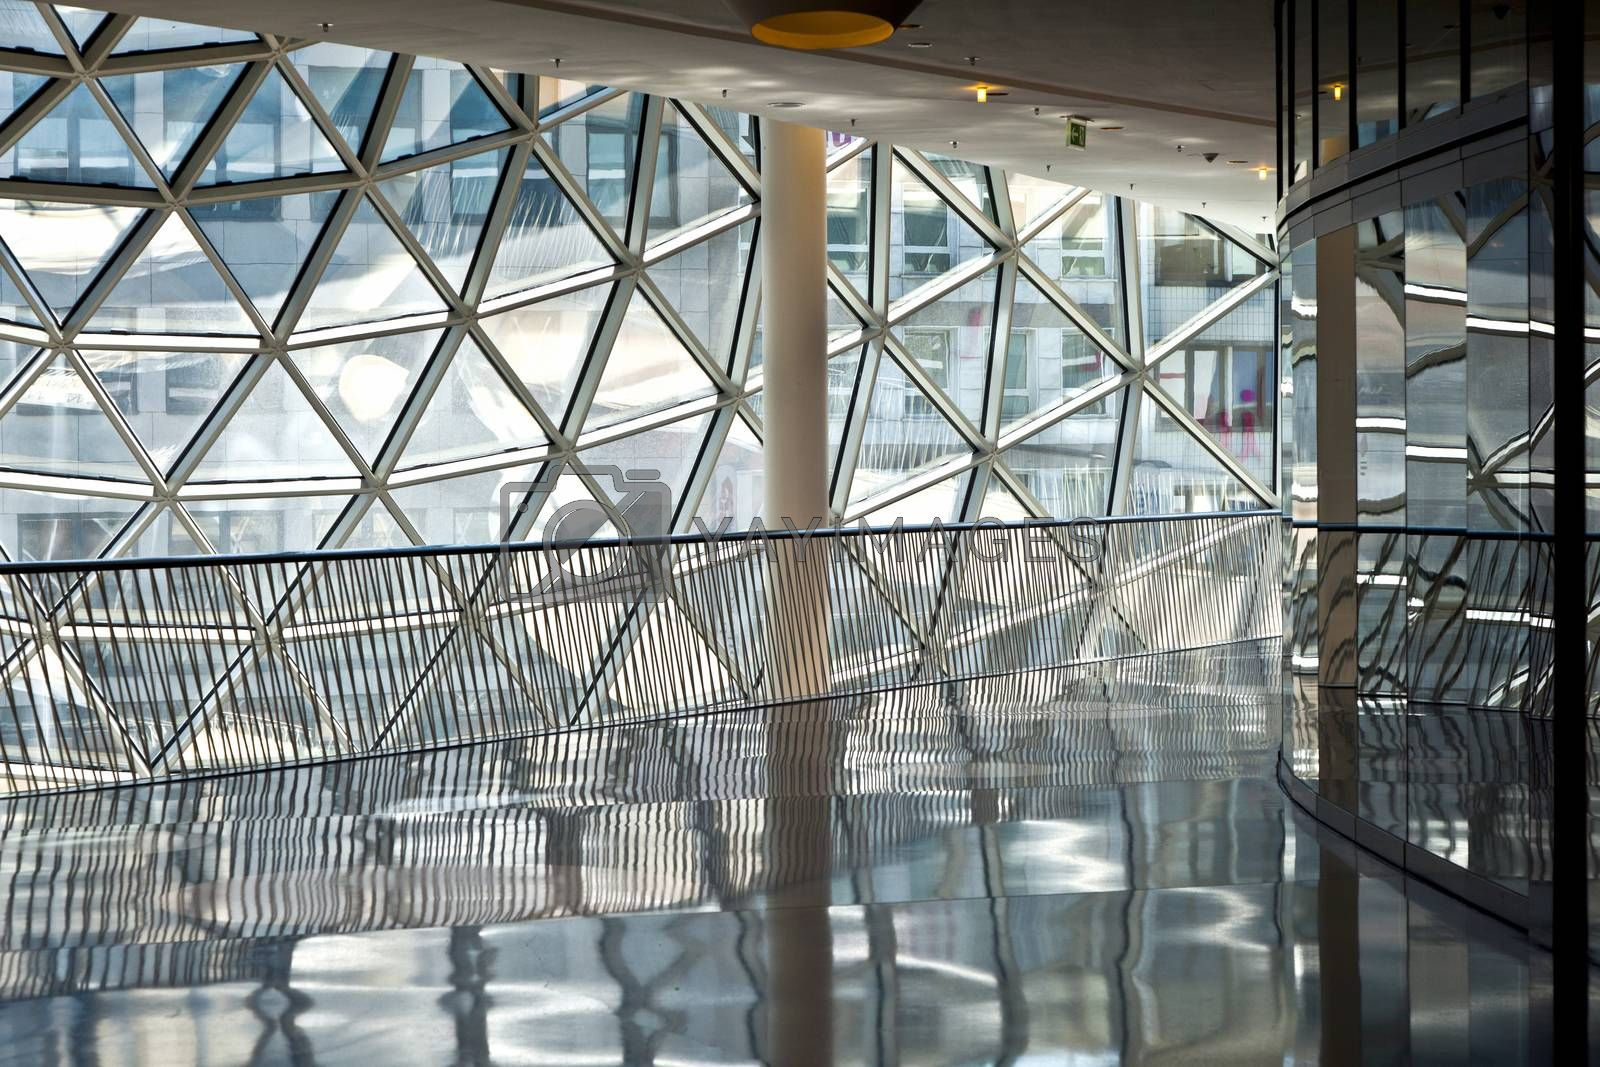 FRANKFURT, GERMANY - AUG 21, 2010: futuristic shopping center Myzeil in Frankfurt, Germany. It was opened in 2009 by Roman architect Massimiliano Fuksas.